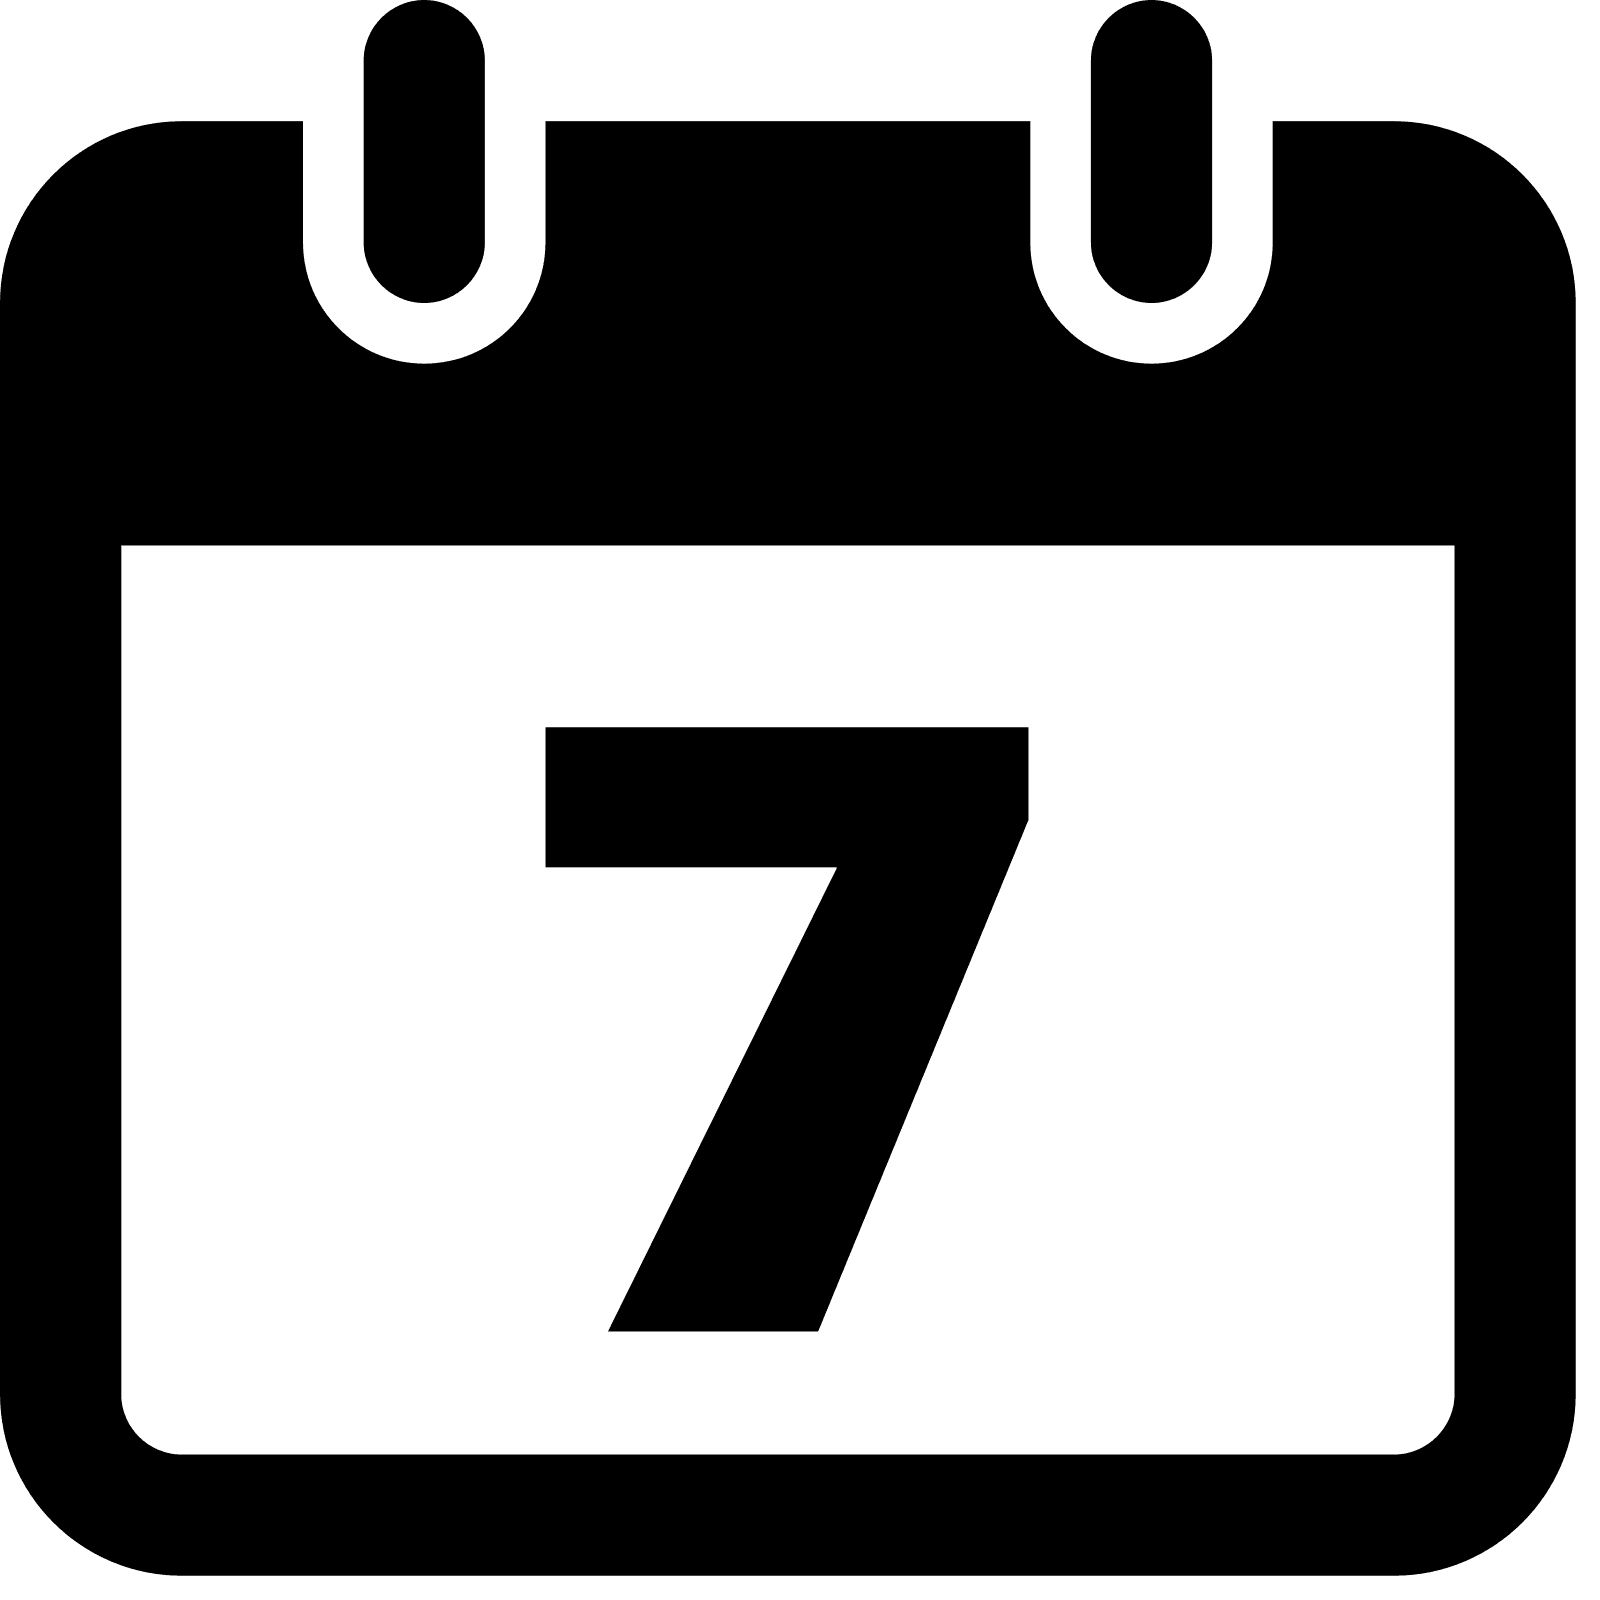 Calendar Icon Transparent Background : Png week transparent images pluspng